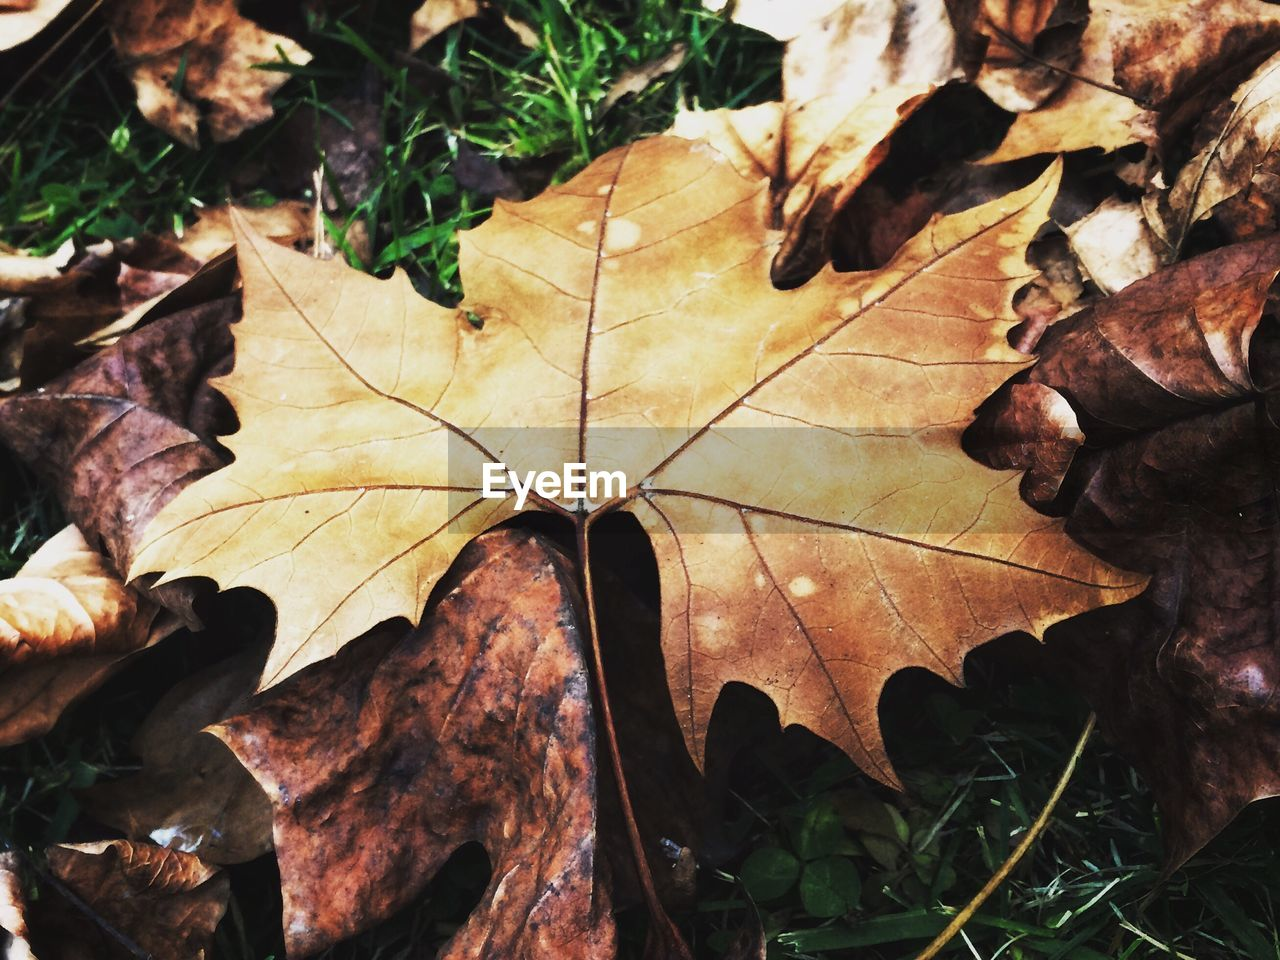 HIGH ANGLE VIEW OF MAPLE LEAVES FALLEN IN AUTUMN